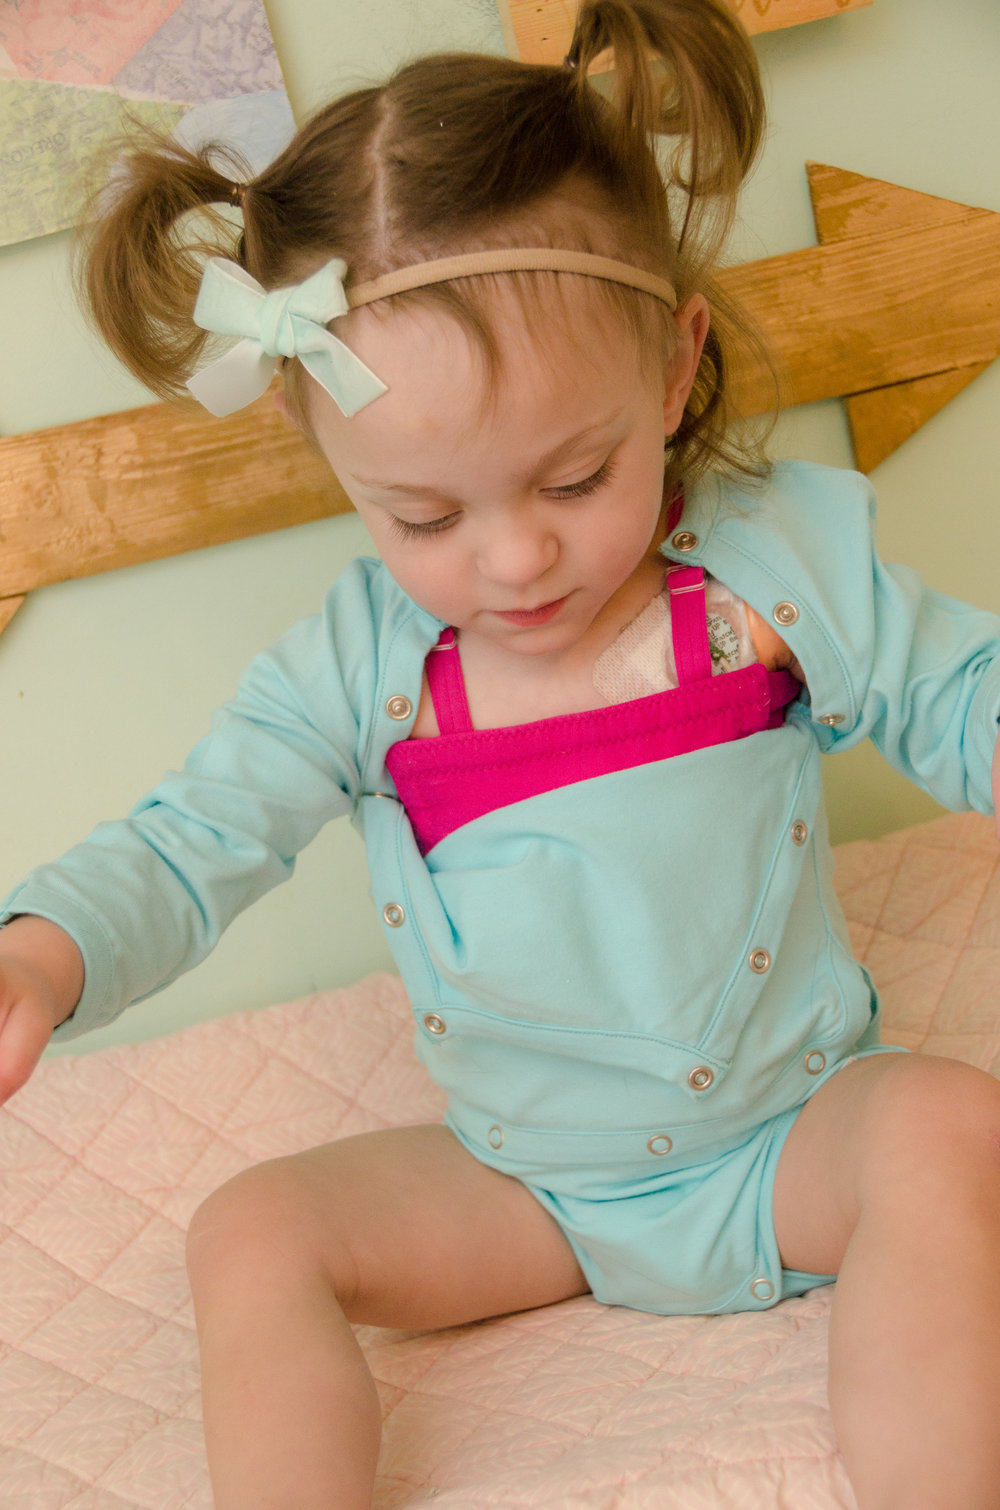 about - Lotsa Brave People© Ports and More™ shirts and bodysuits provide innovative access and tubing management, reducing the risk of infections during treatments while making children more comfortable. Also, we're committed to helping hospitals enhance their standard of care and offering improved clothing options for caregivers and patients.